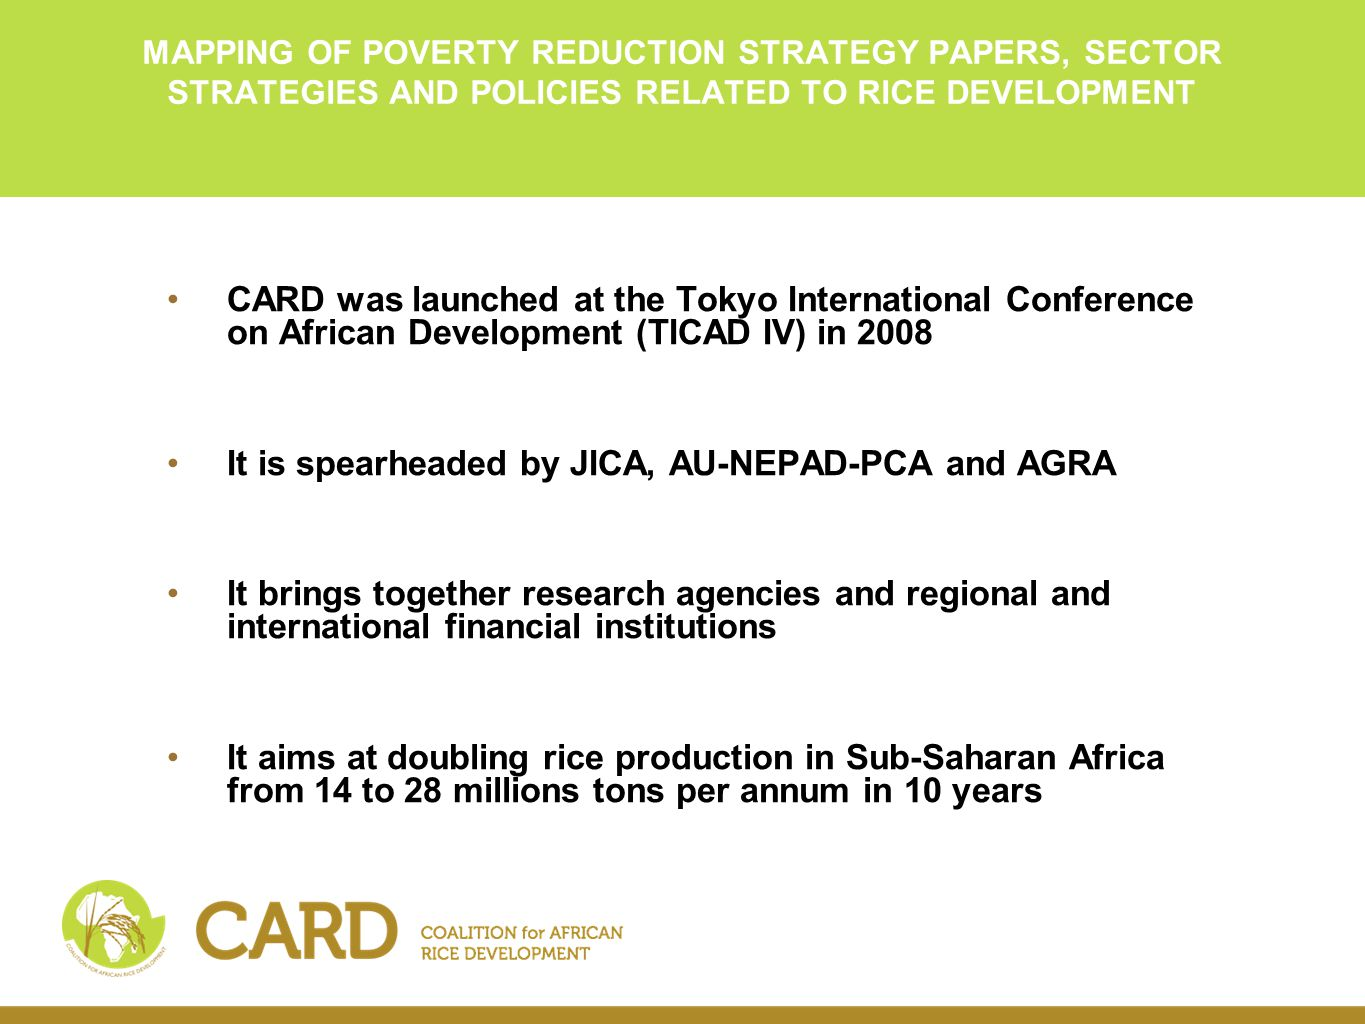 The new Partnership for Africa's Development. Challenges and Prospects